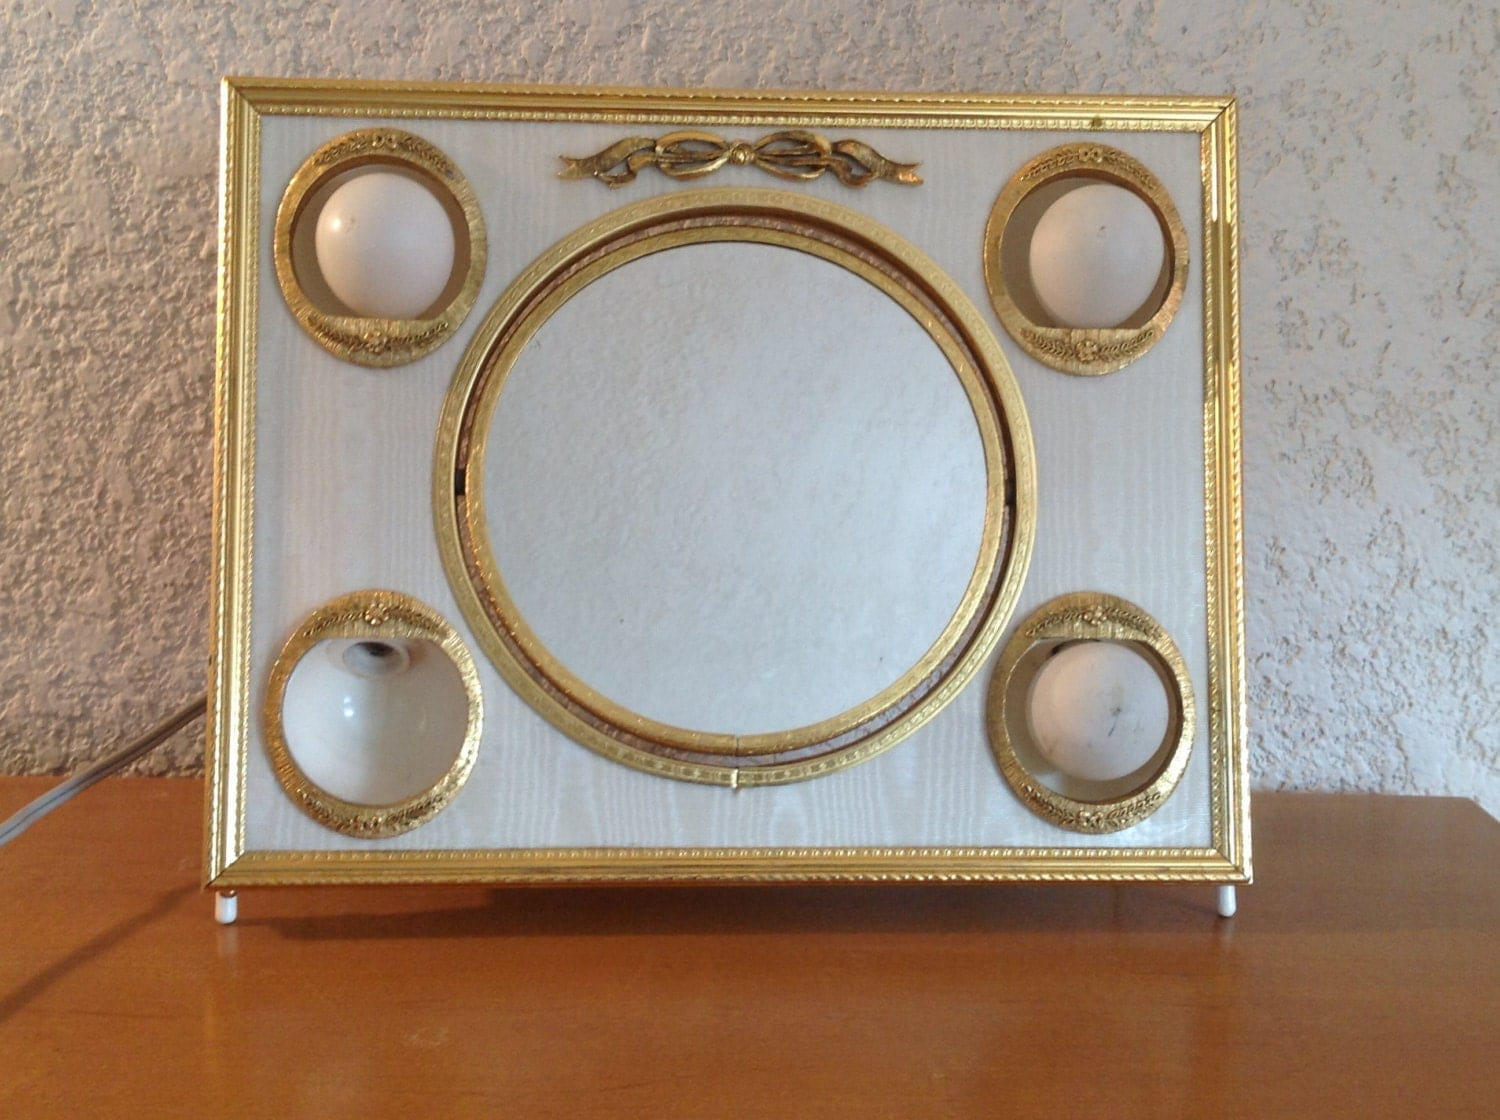 Vanity Mirror With Lights Etsy : Vintage Matson Vanity Mirror with lighted frame. Ornate gold